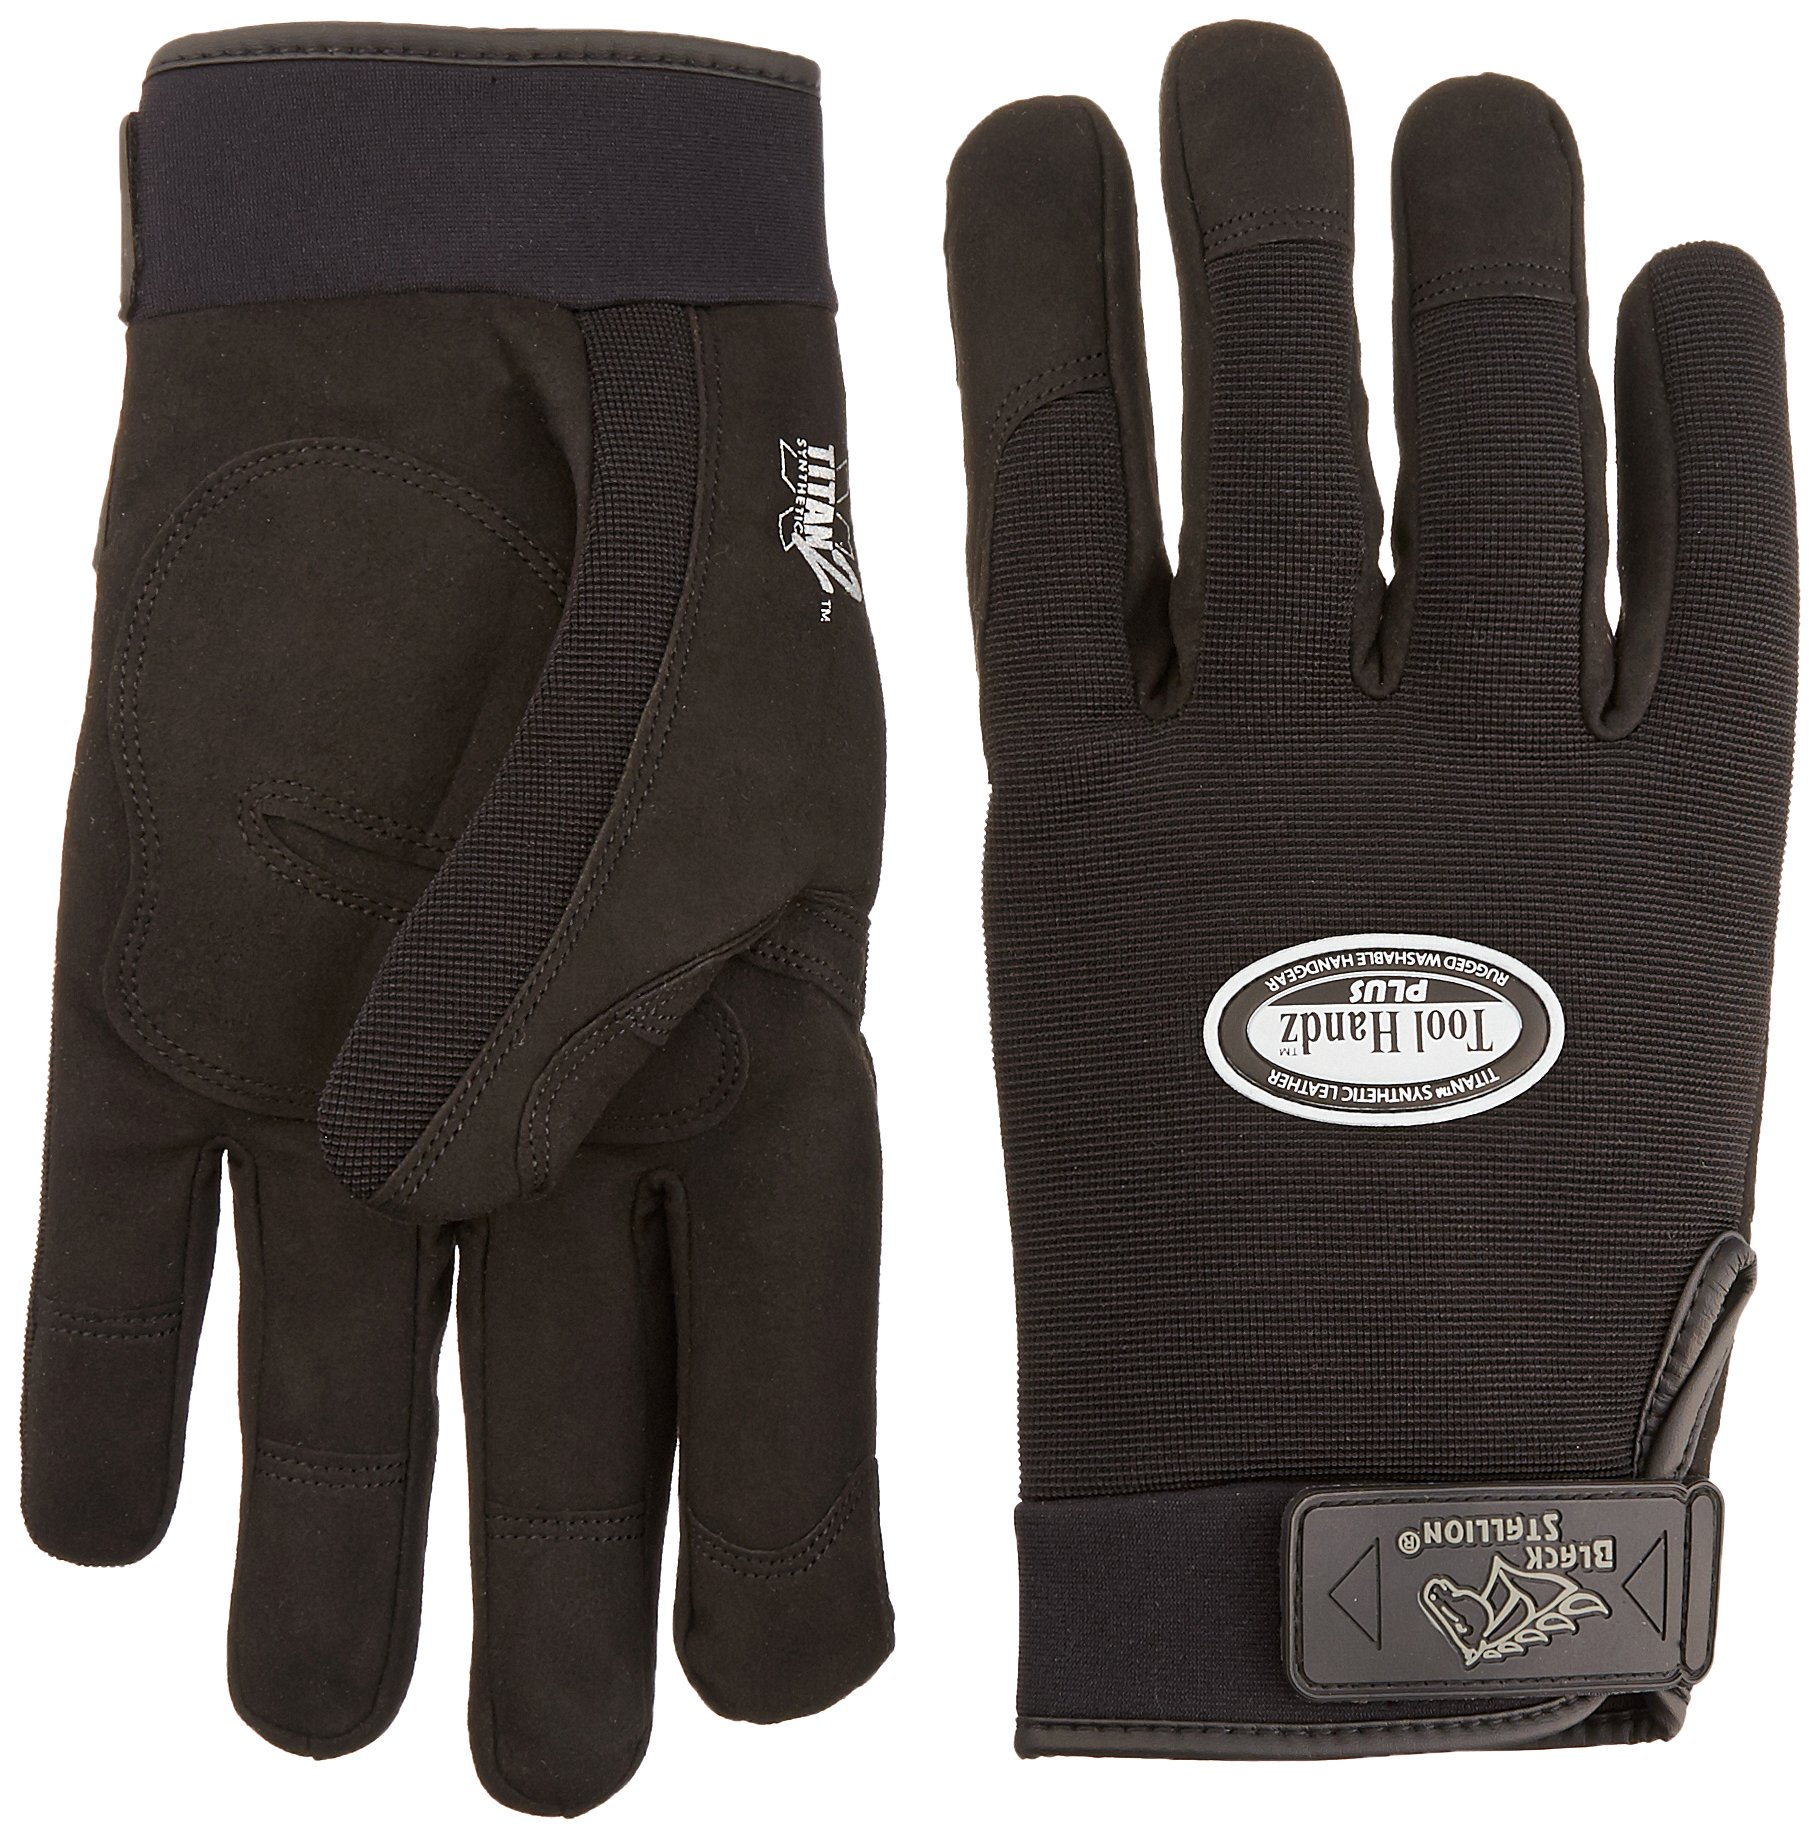 Revco 99PLUS-BLACK-2XL Tool Handz Plus Reinforced Snug-Fitting Gloves, Synthetic, XX-Large  (12 Pairs)